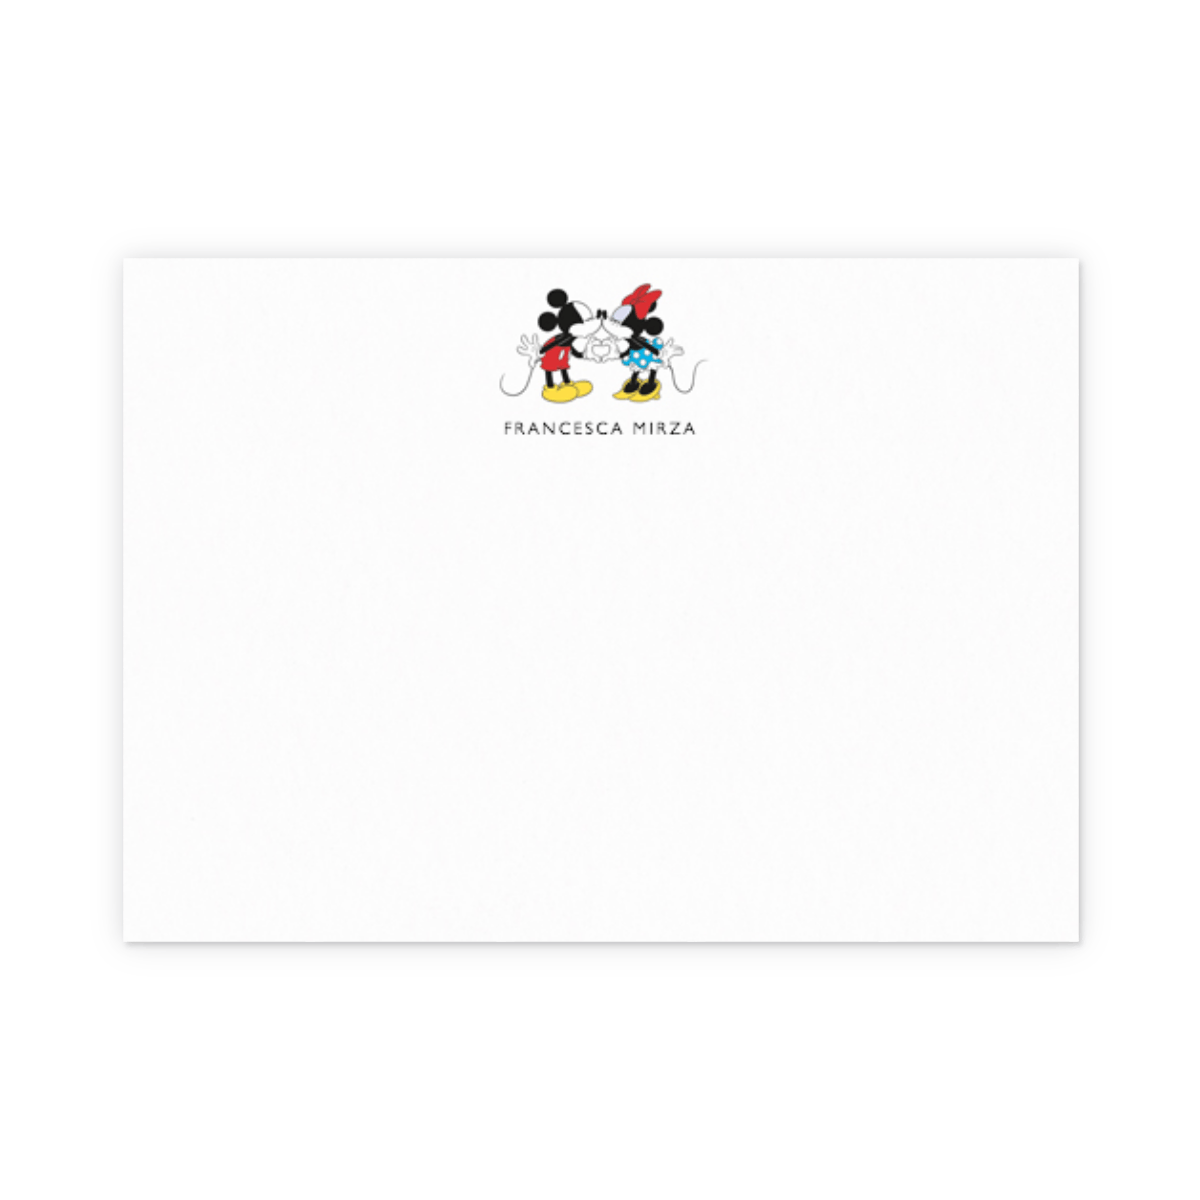 Https%3a%2f%2fwww.papier.com%2fproduct image%2f36041%2f10%2fmickey minnie mouse 9024 front 1523556118.png?ixlib=rb 1.1